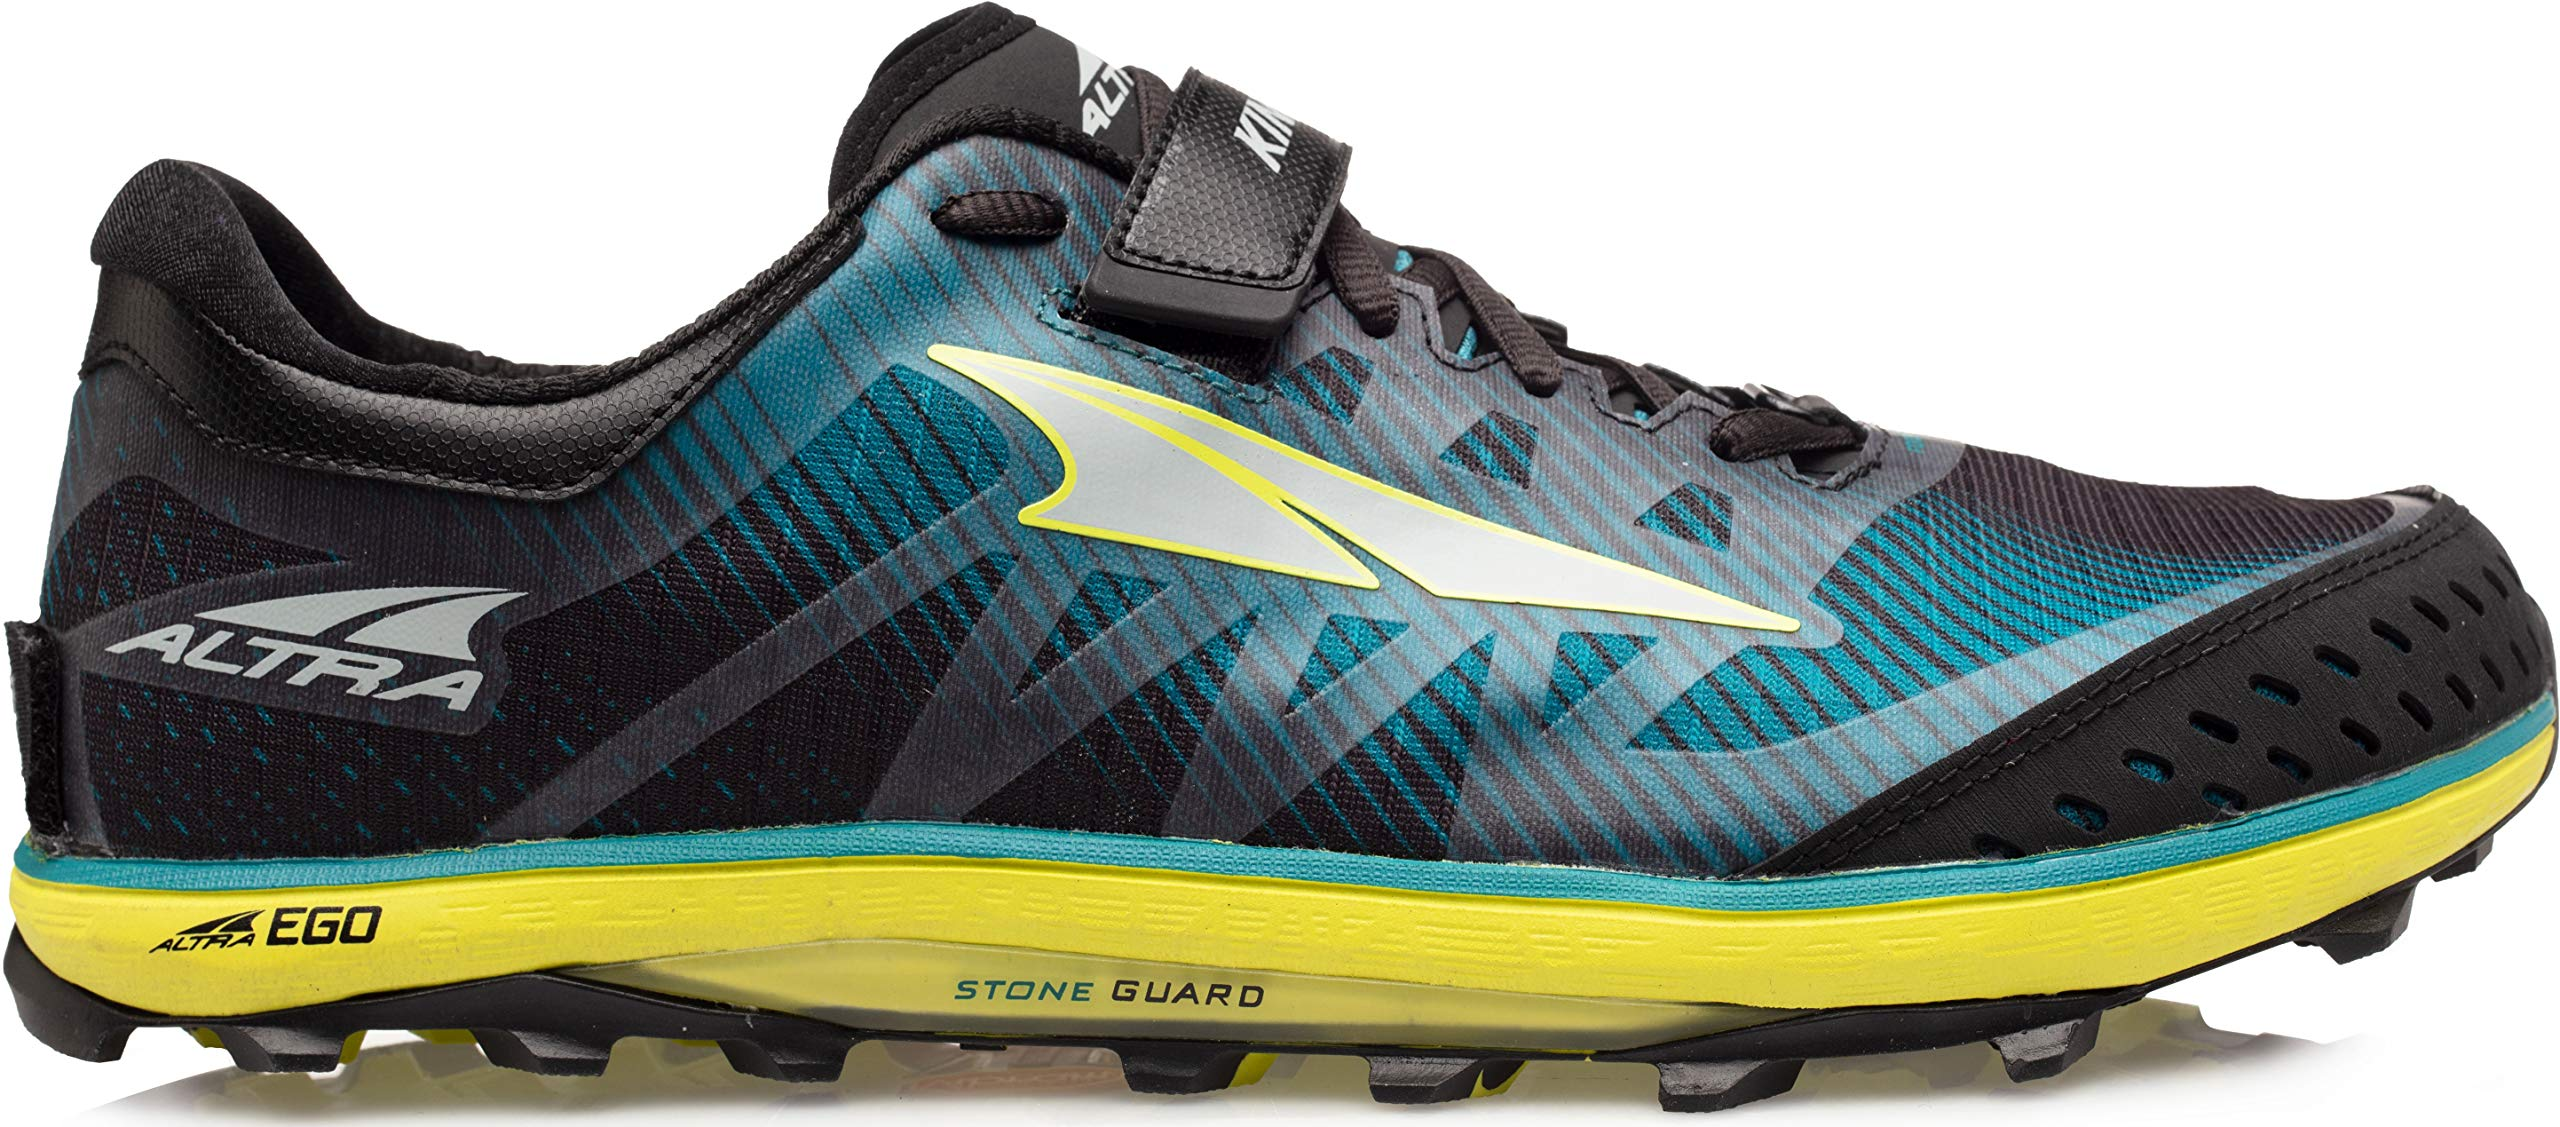 Altra Men's King MT 2 Trail Running Shoe, Teal/Lime - 8.5 M US by Altra